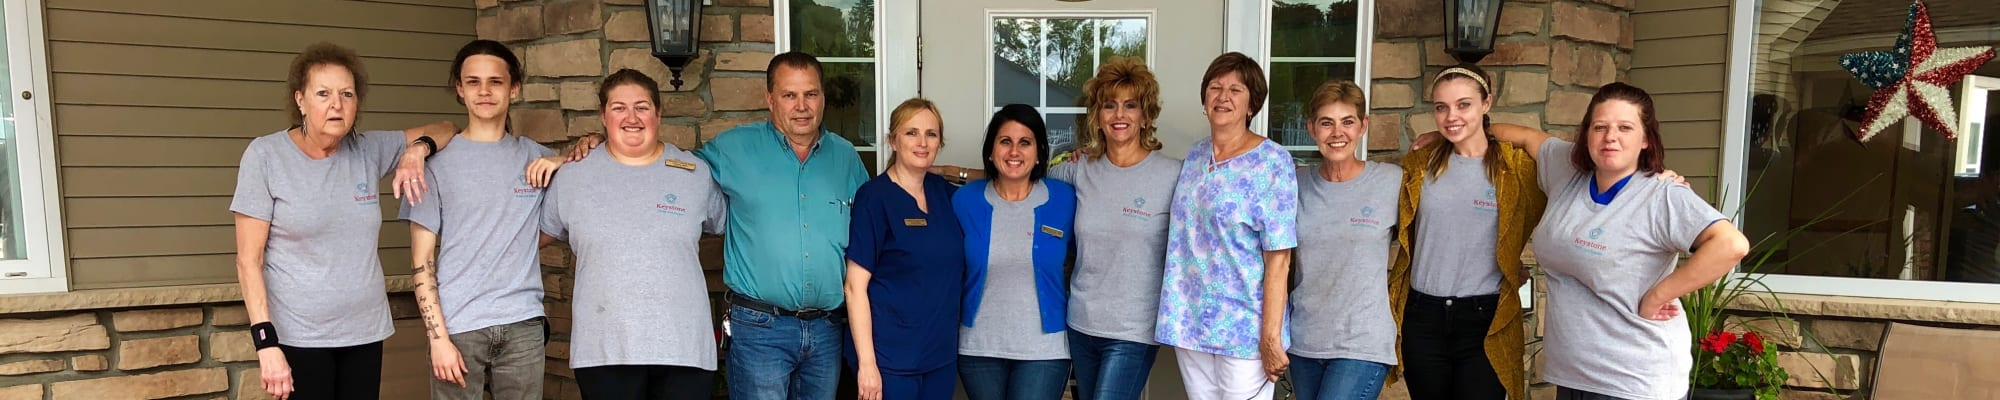 Our Team at Clearview Lantern Suites in Warren, Ohio